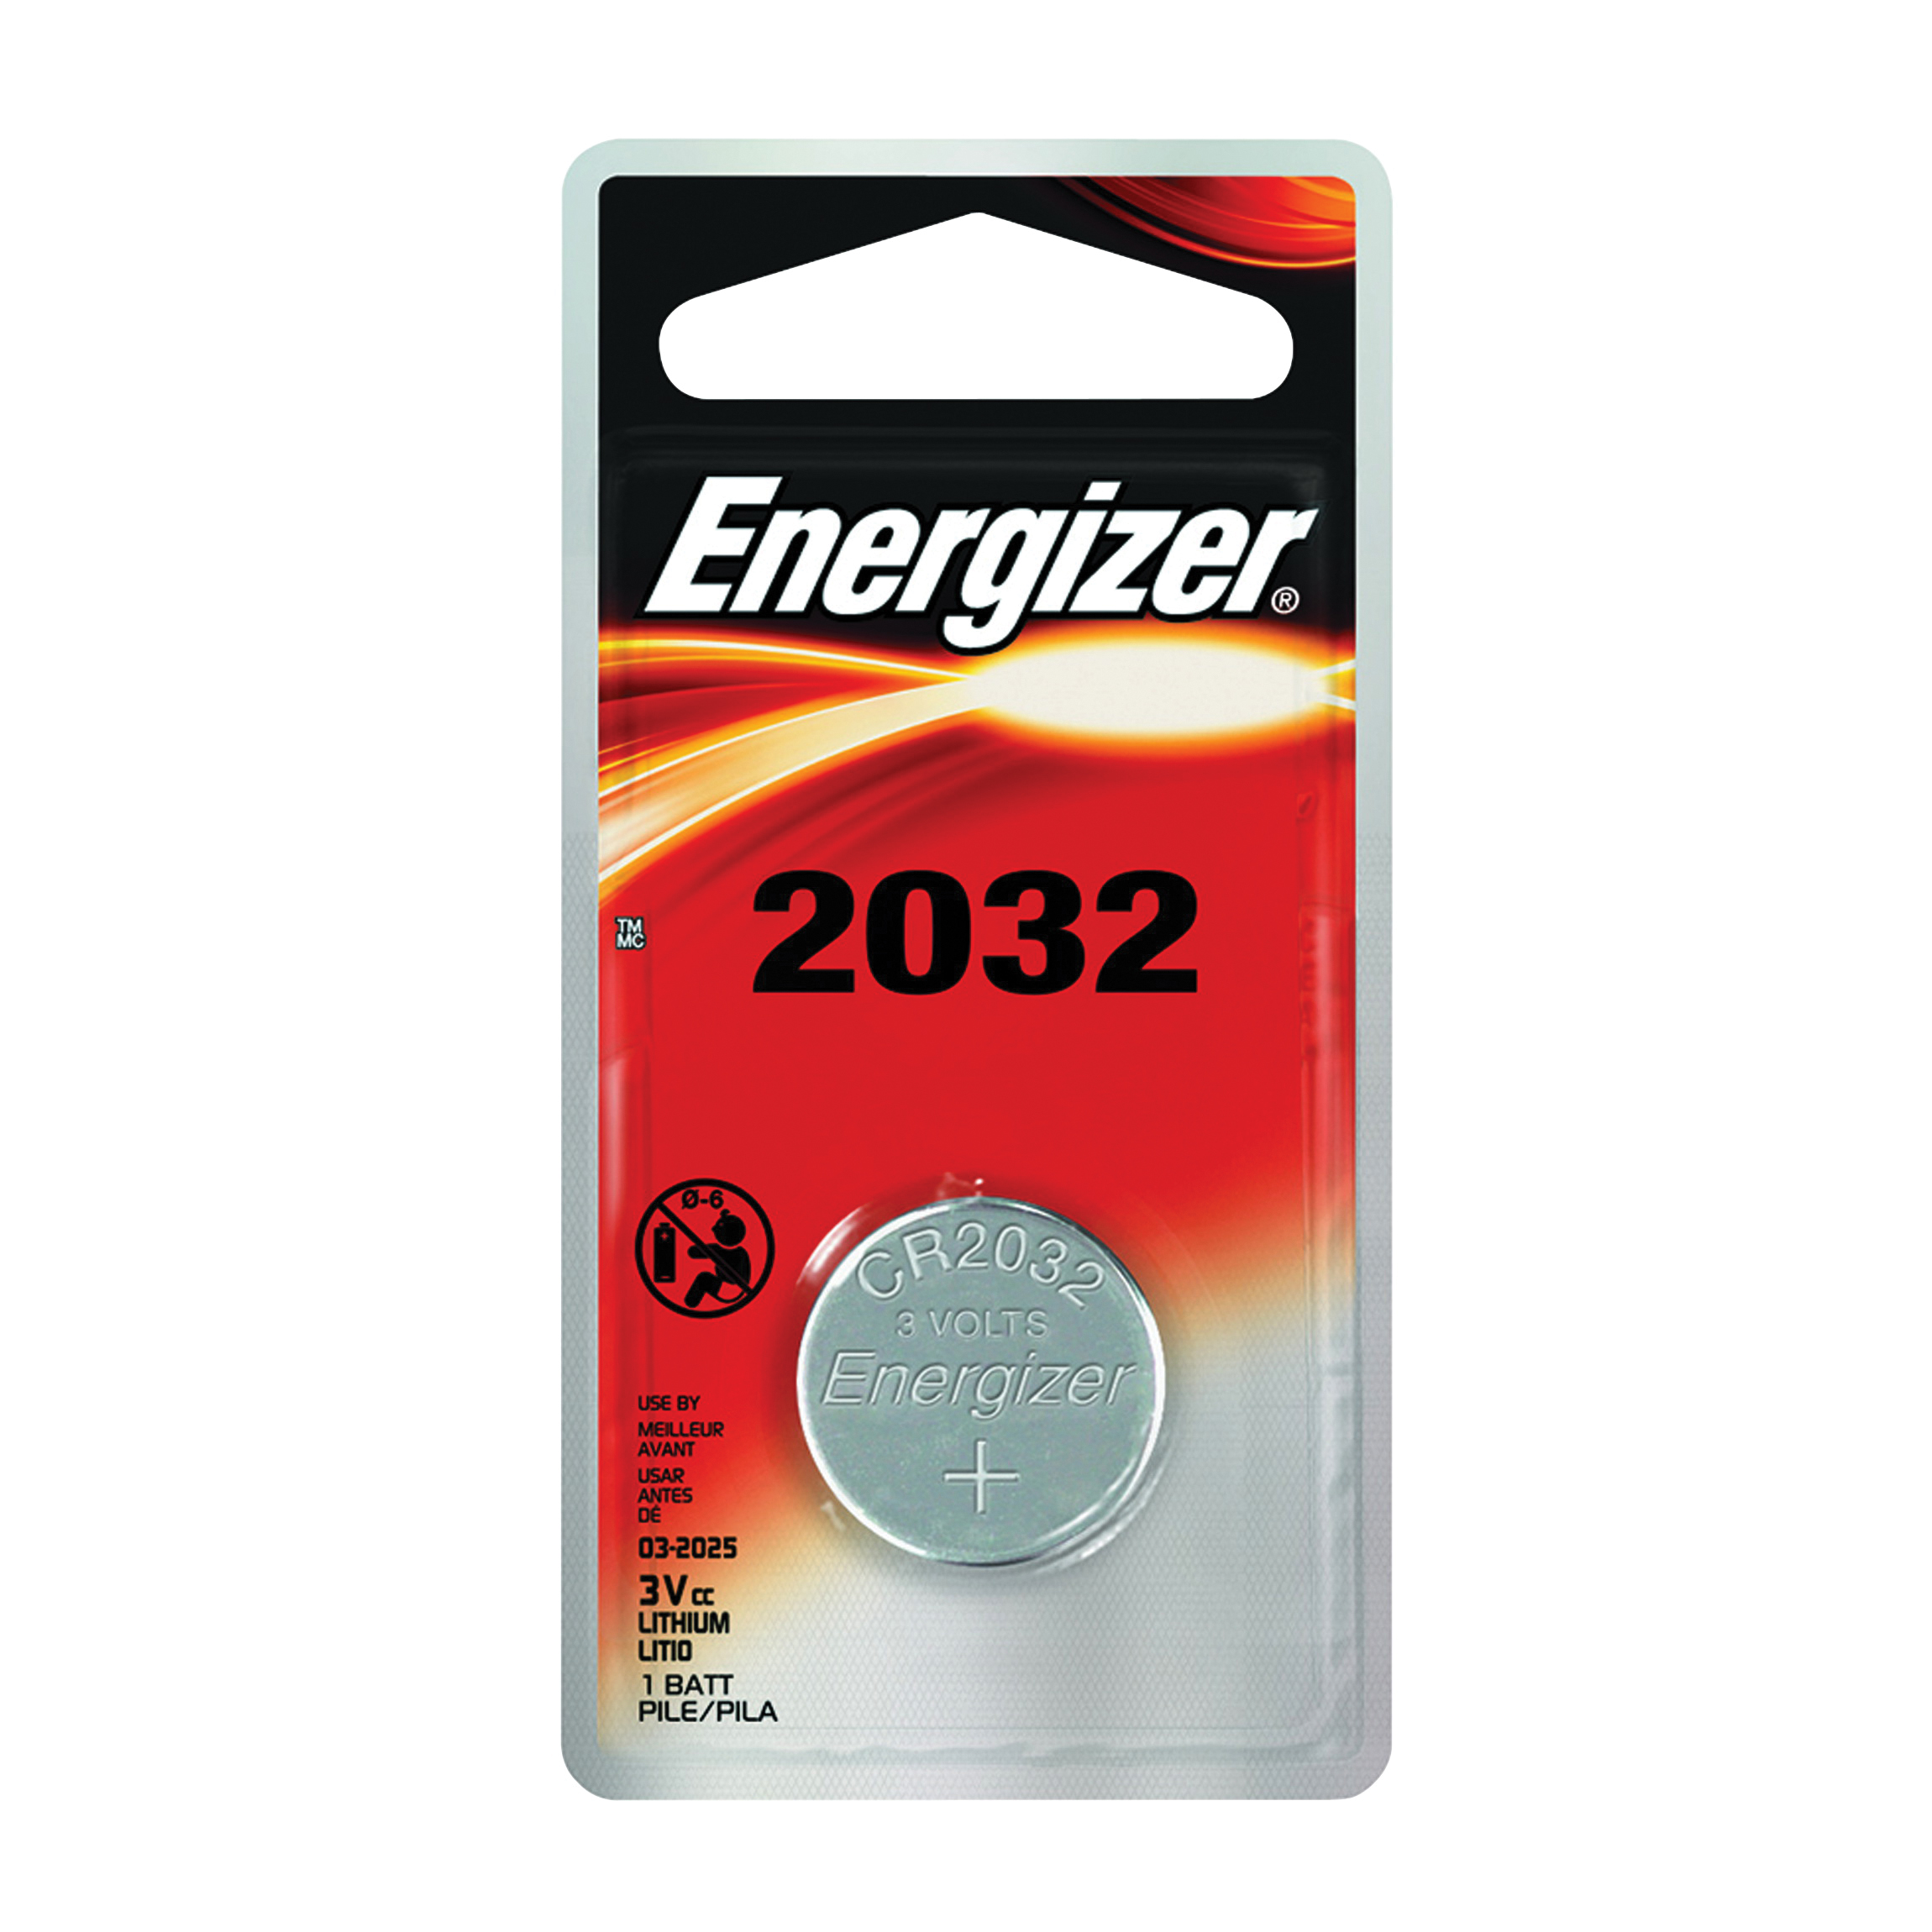 Picture of Energizer ECR2032BP Coin Cell Battery, 3 V Battery, 235 mAh, CR2032 Battery, Lithium, Manganese Dioxide